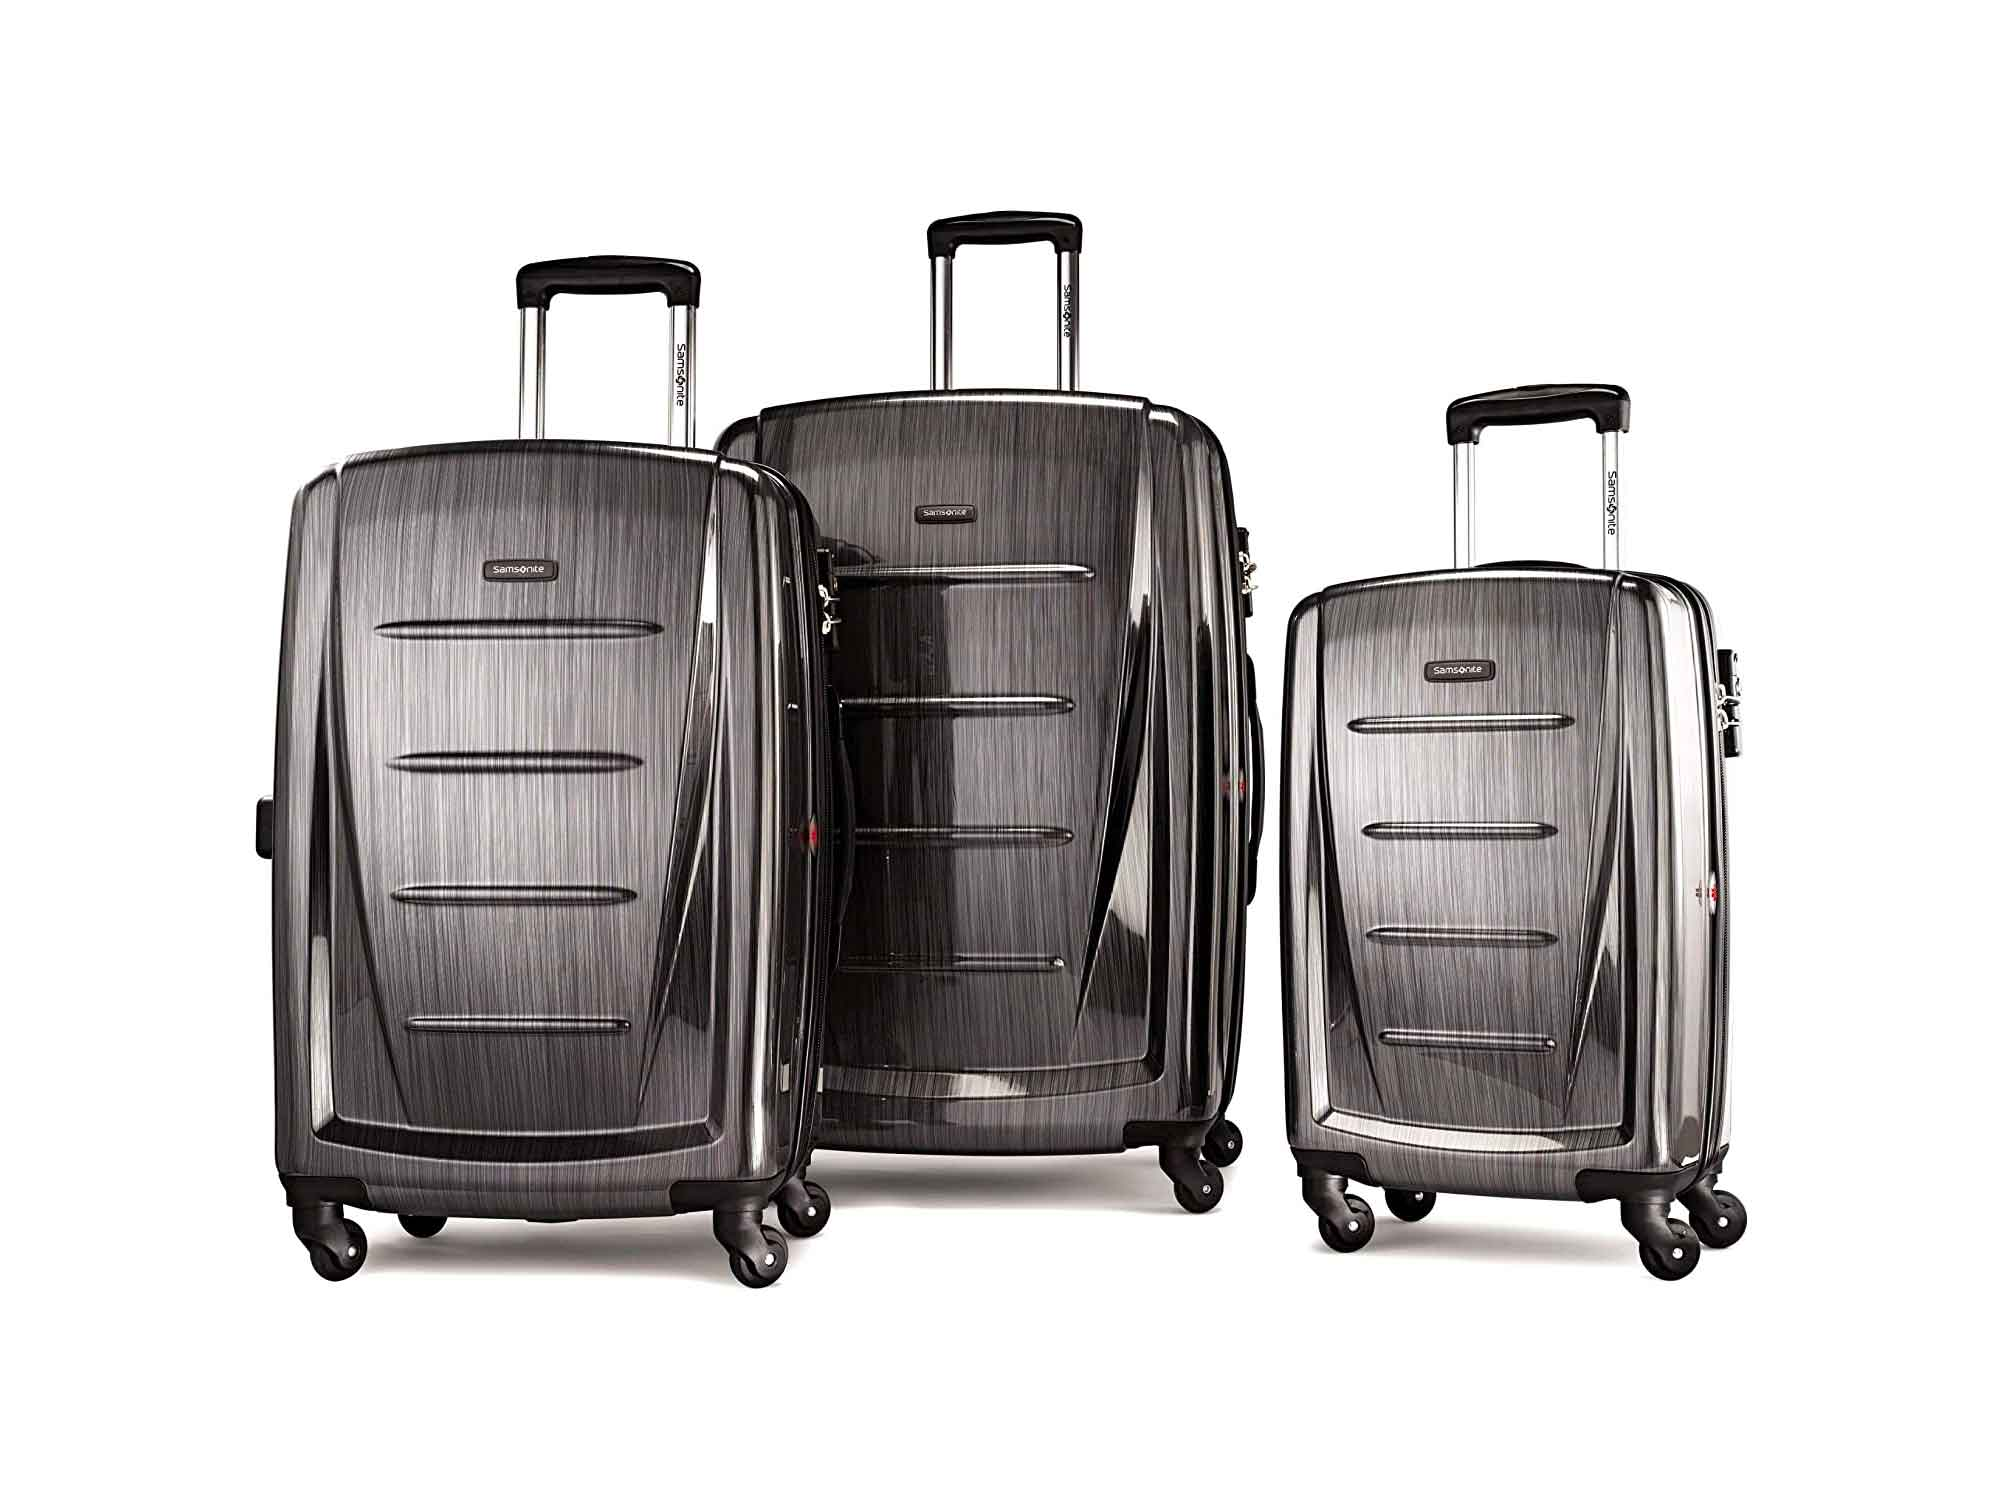 Samsonite Winfield 2 Hardside Expandable Luggage with Spinner Wheels, Charcoal, 3-Piece Set